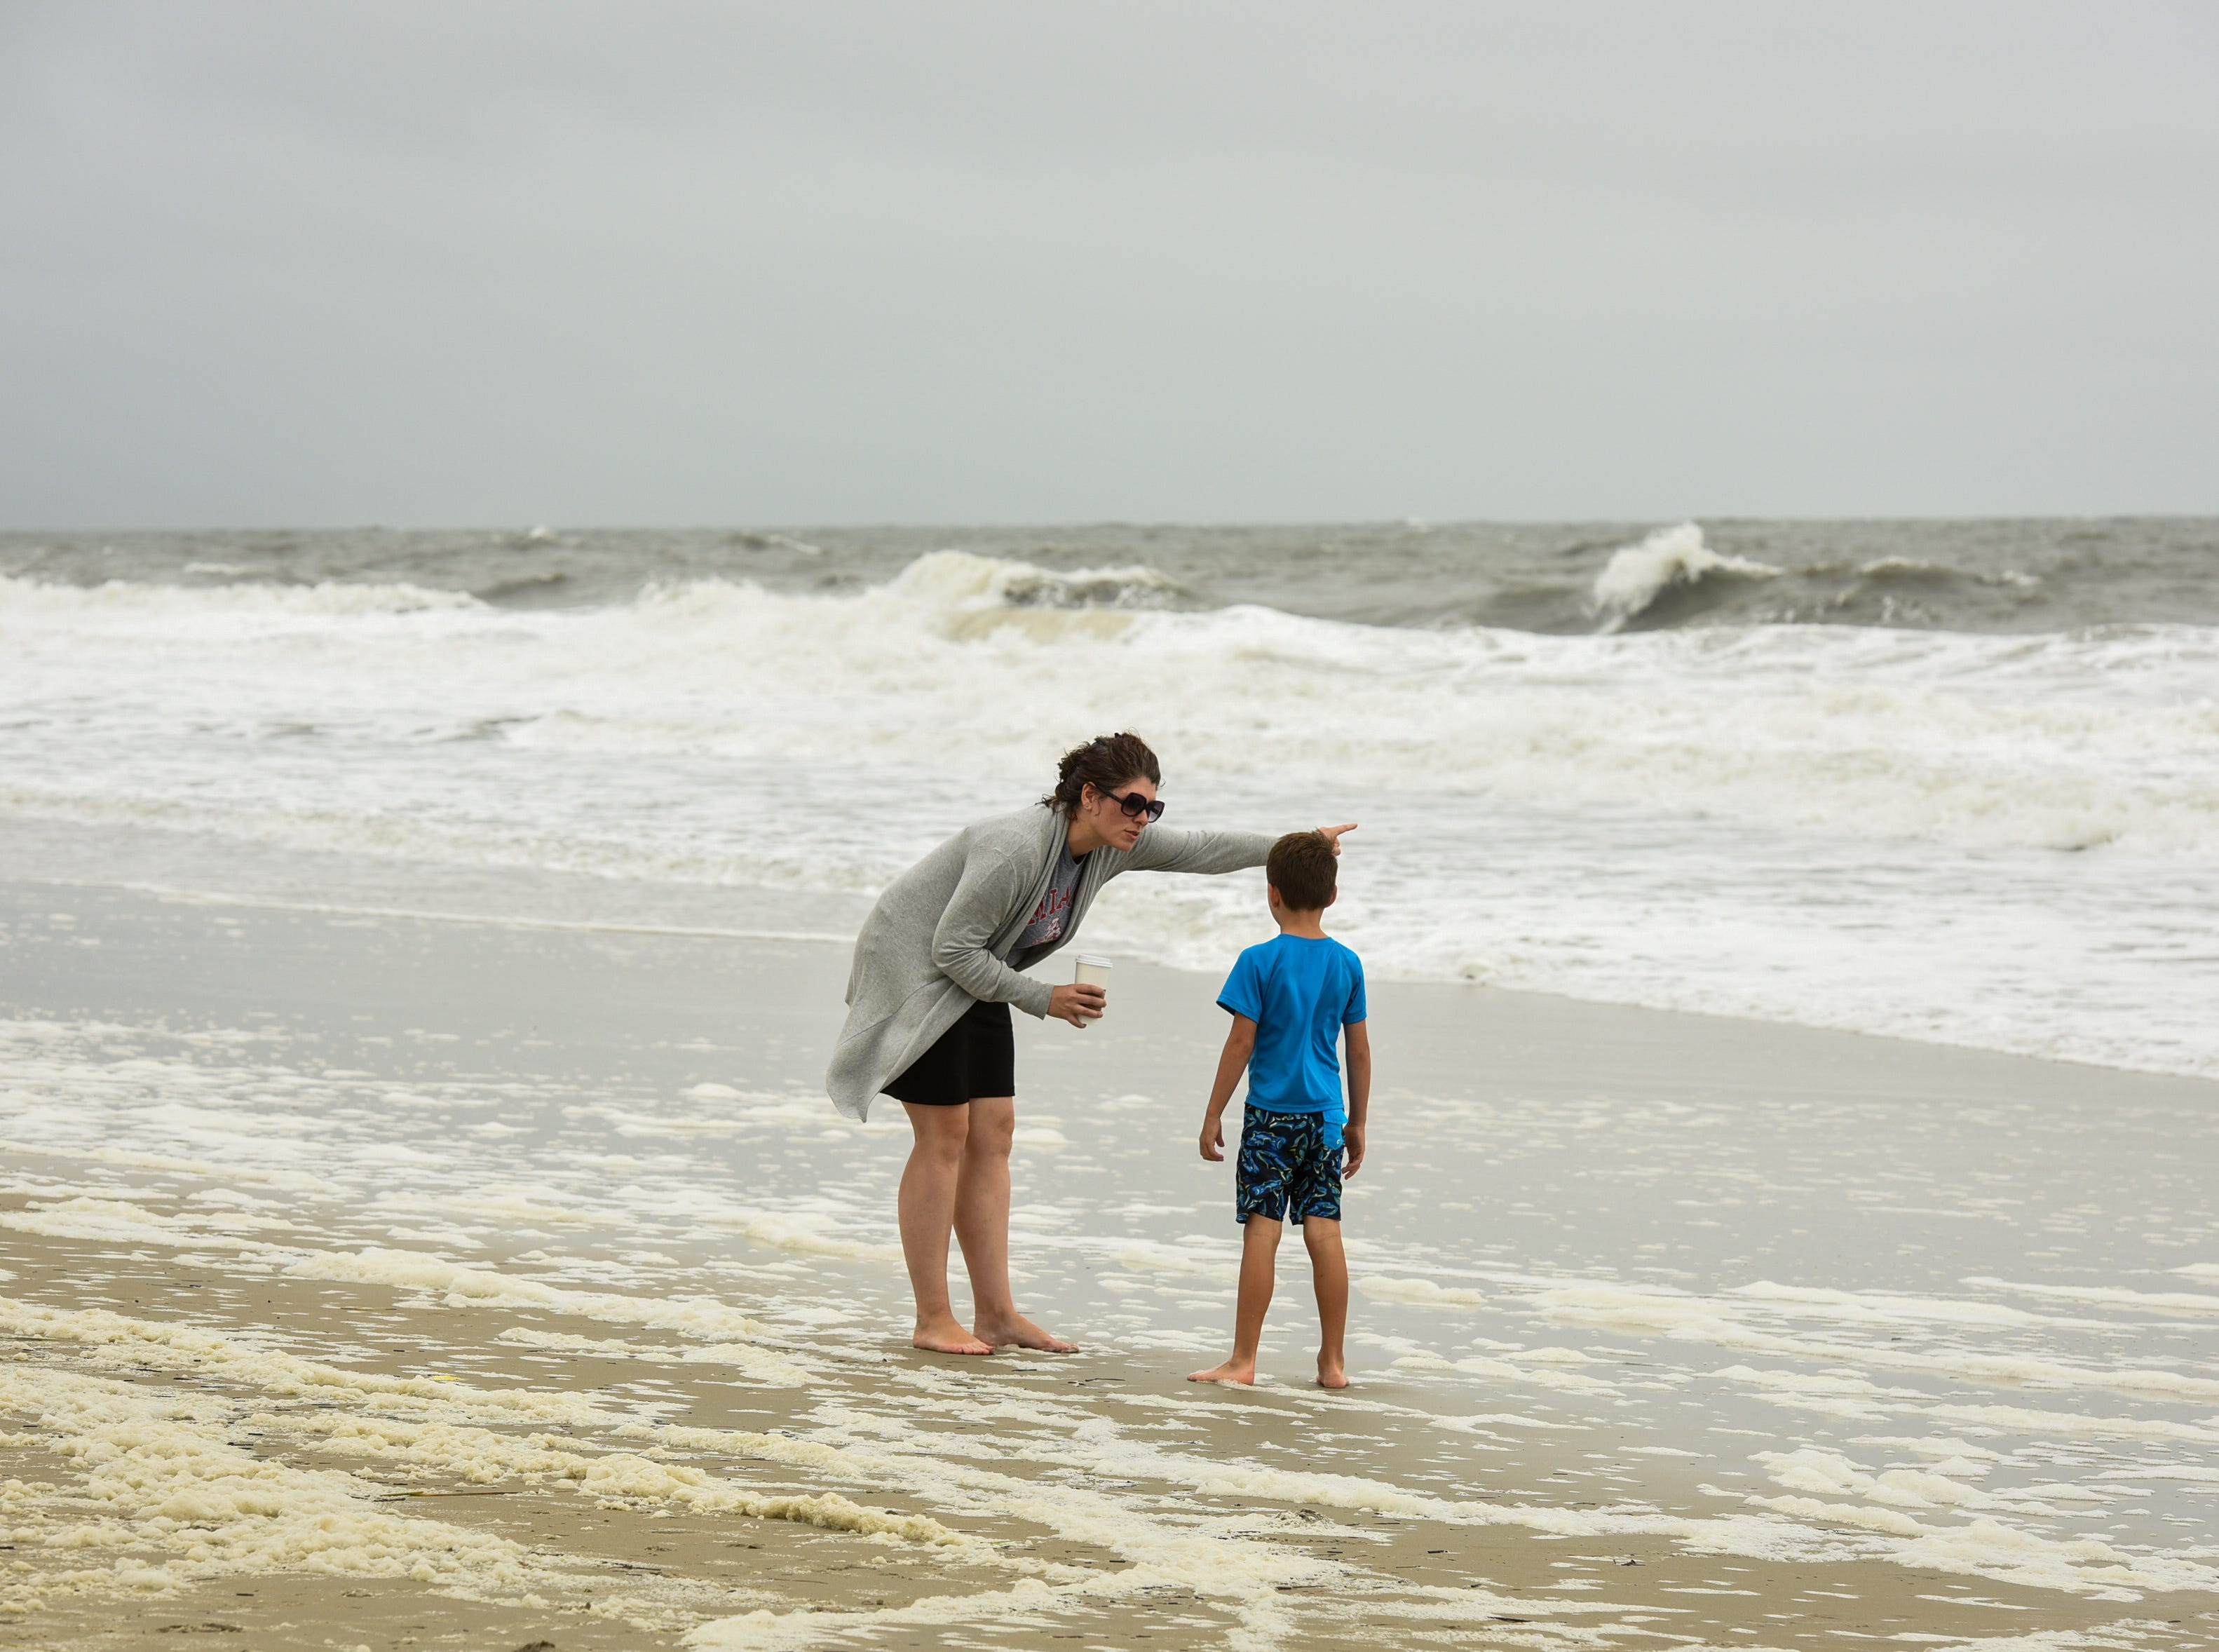 Beach goers enjoy the ocean on a windy day in Bethany Beach, Monday Sept. 10.